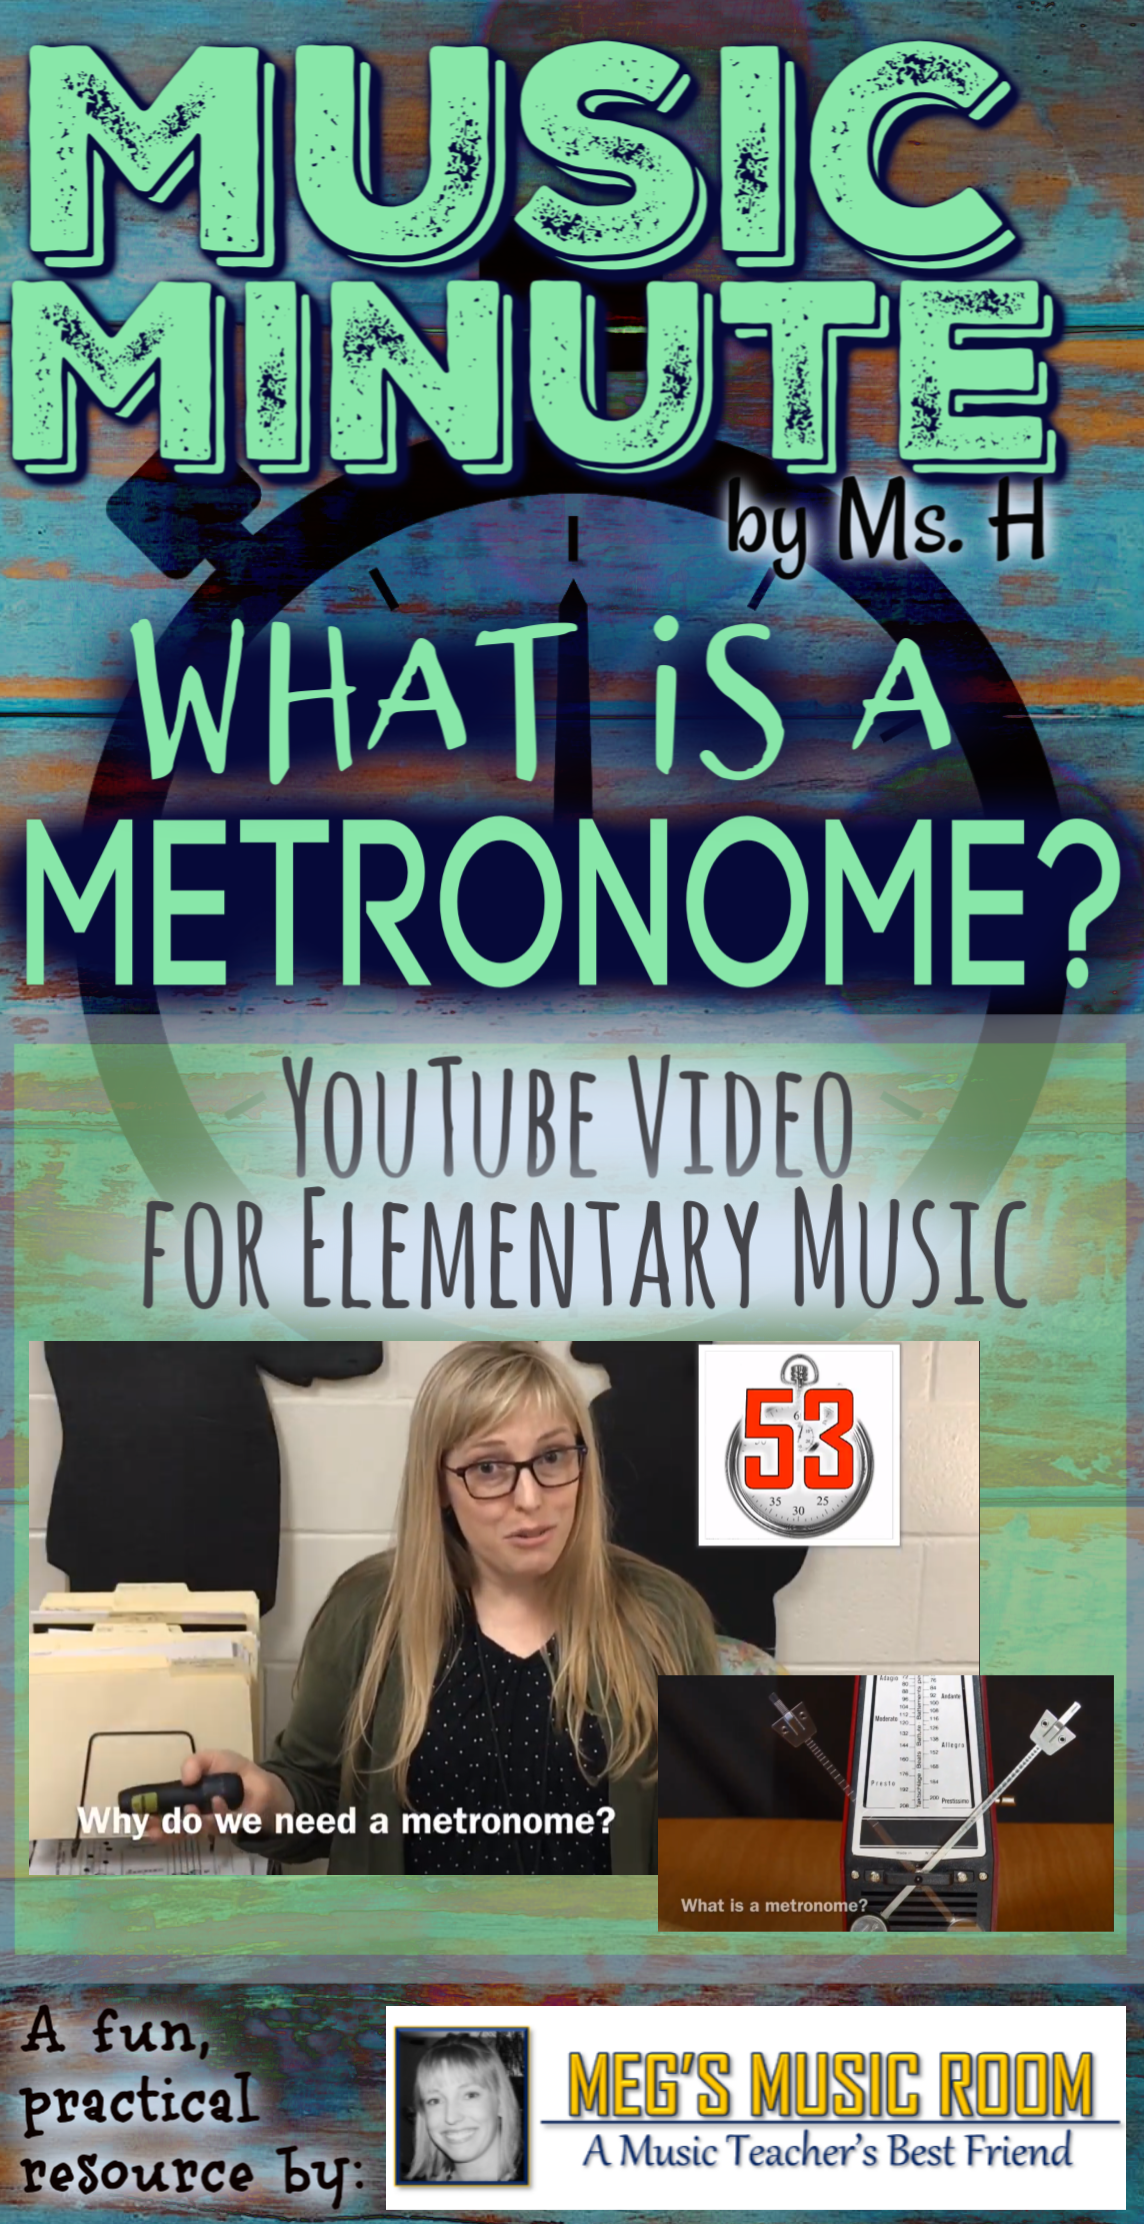 Learn What A Metronome Does And Why Musicians Need One